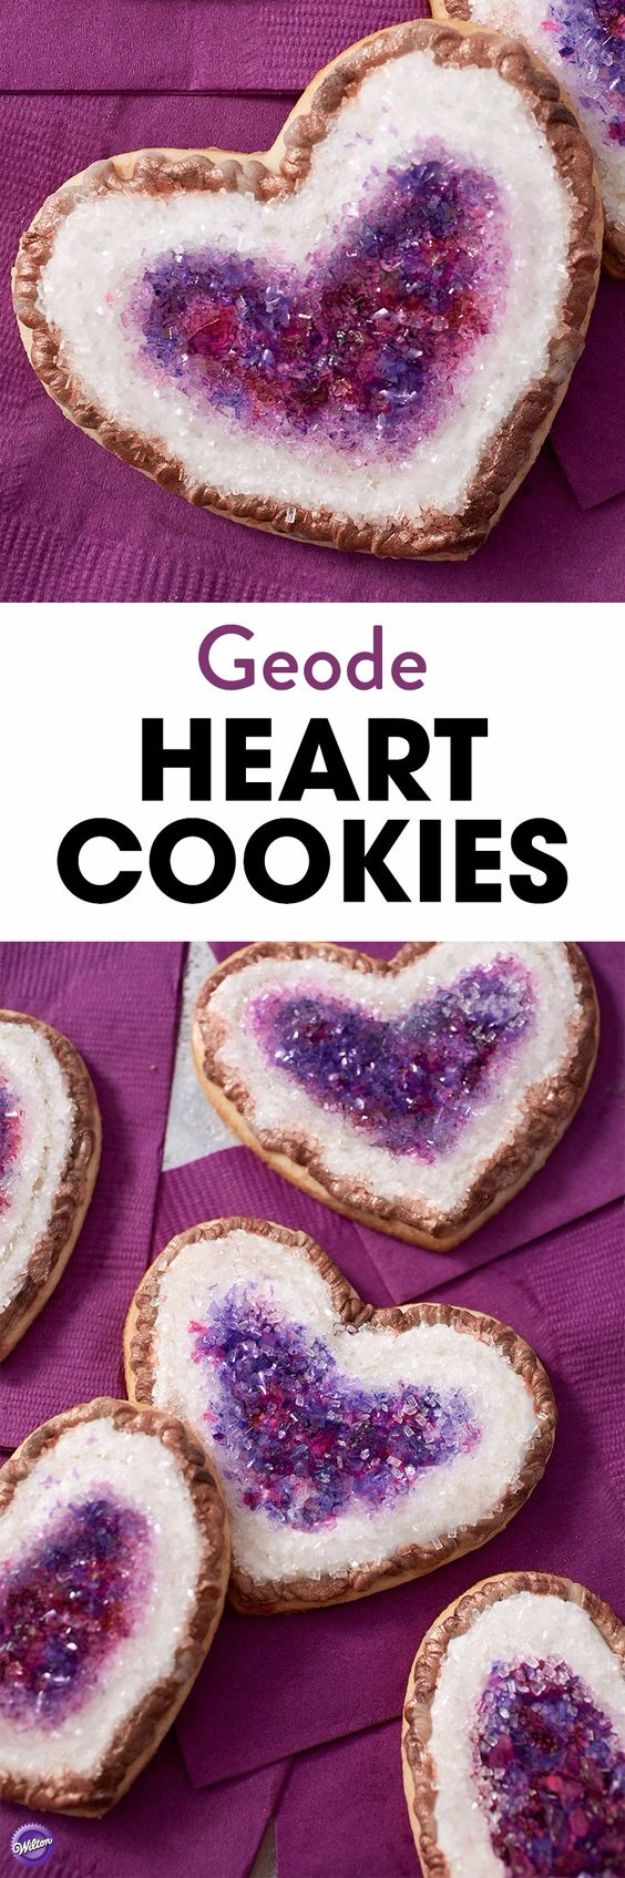 Cool Cookie Decorating Ideas - Geode Heart Cookies - Easy Ways To Decorate Cute, Adorable Cookies - Quick Recipes and Simple Decorating Tips With Icing, Candy, Chocolate, Buttercream Frosting and Fruit - Best Party Trays and Cookie Arrangements http://diyjoy.com/cookie-decorating-ideas